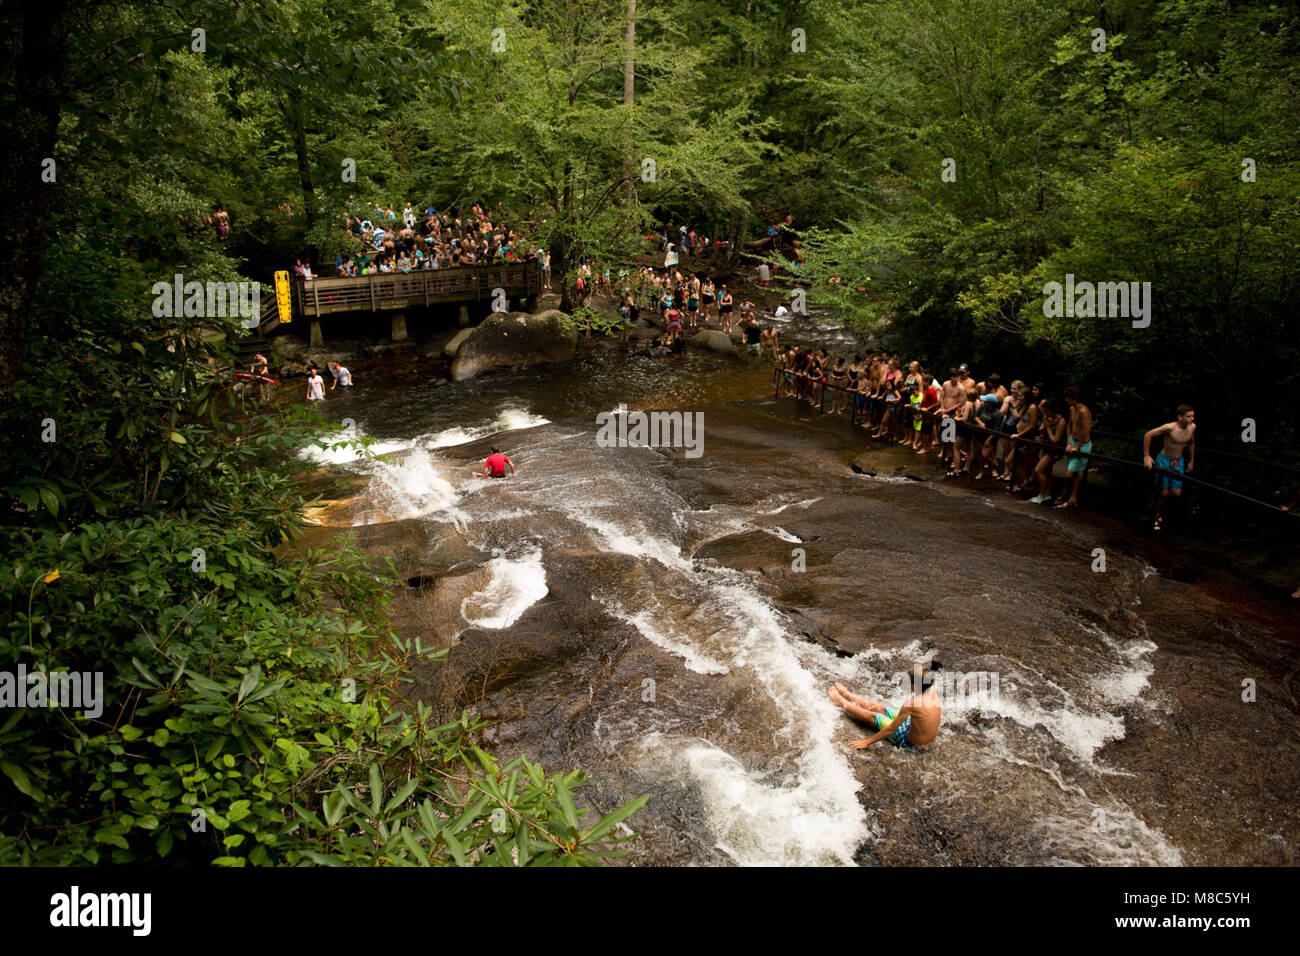 Kids slide down the Sliding Rock in Pisgah National Forest, NC.  Sliding Rock is a 60-foot slippery cascade into - Stock Image